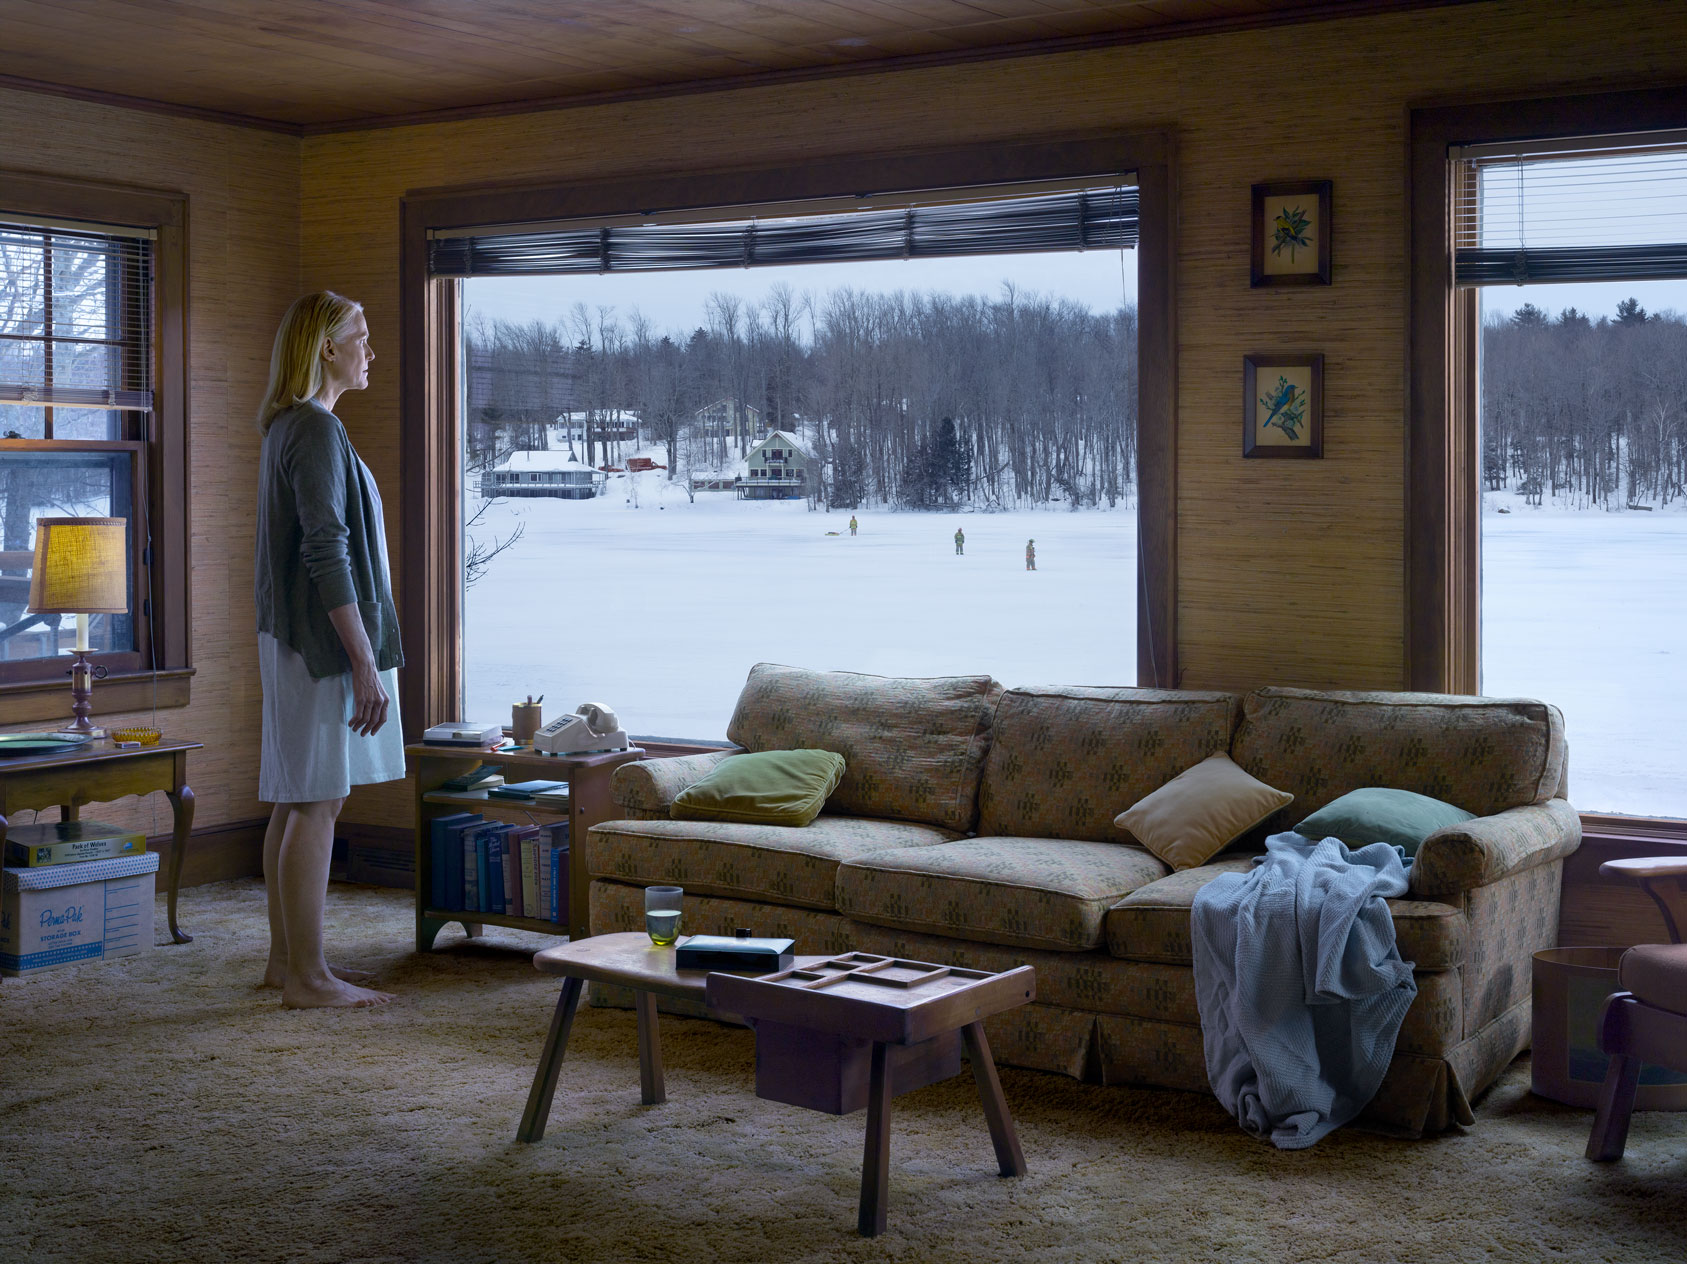 The Disturbance, 2014 Digital pigment print © Gregory Crewdson. Courtesy Gagosian.